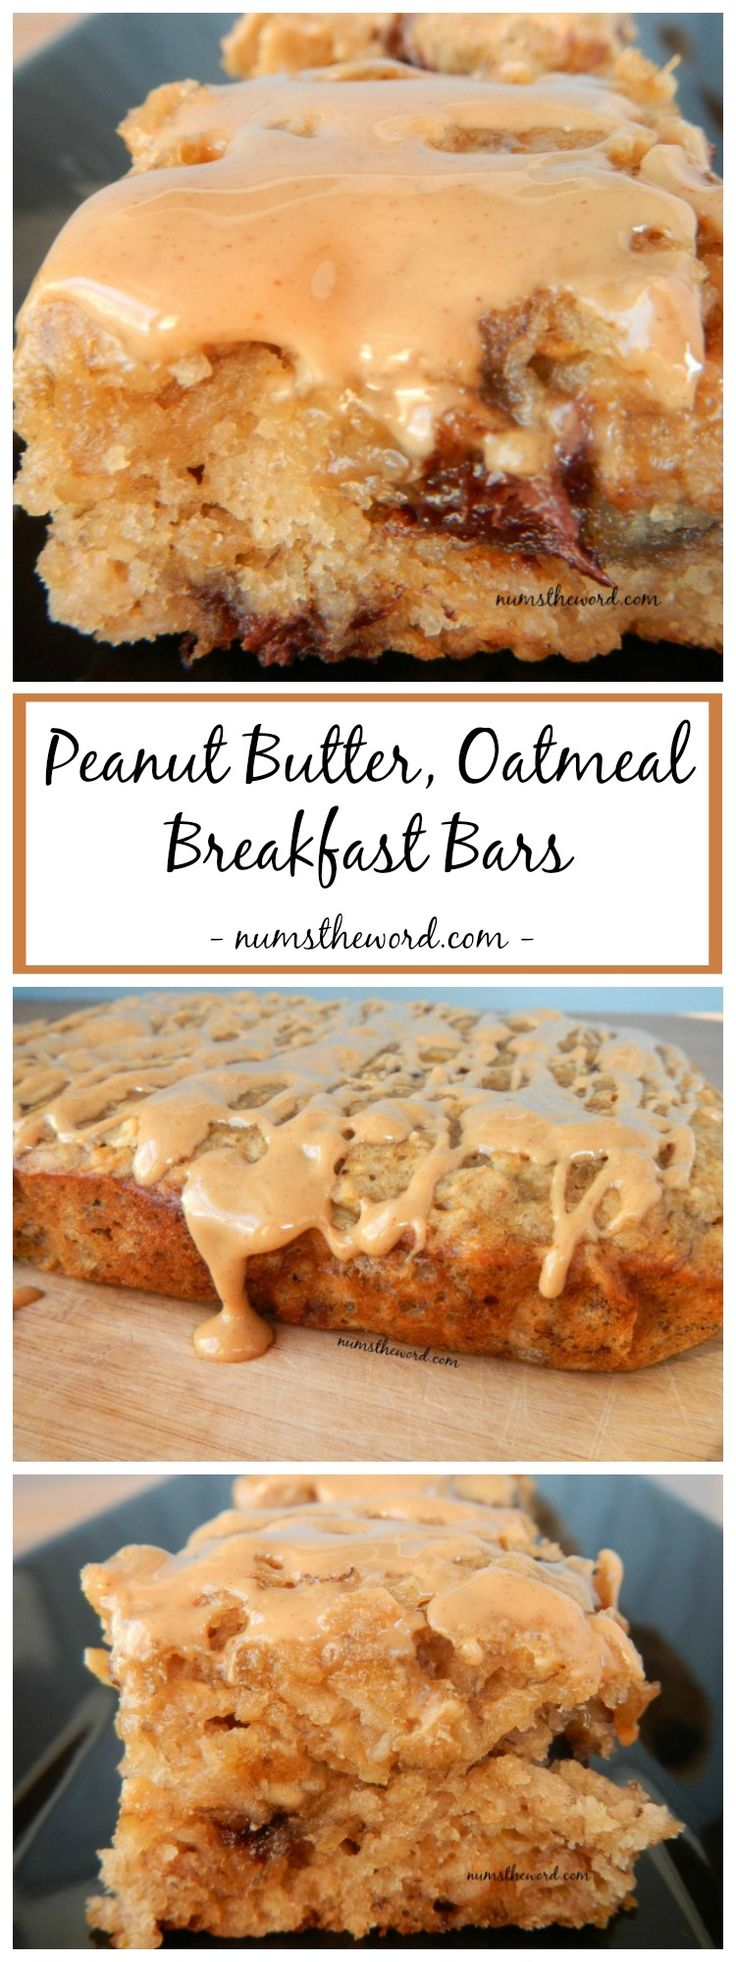 *Peanut Butter, Oatmeal Breakfast bars are a great way to use up ripe bananas. Easy, delicious and perfect for on the go! Kid friendly!